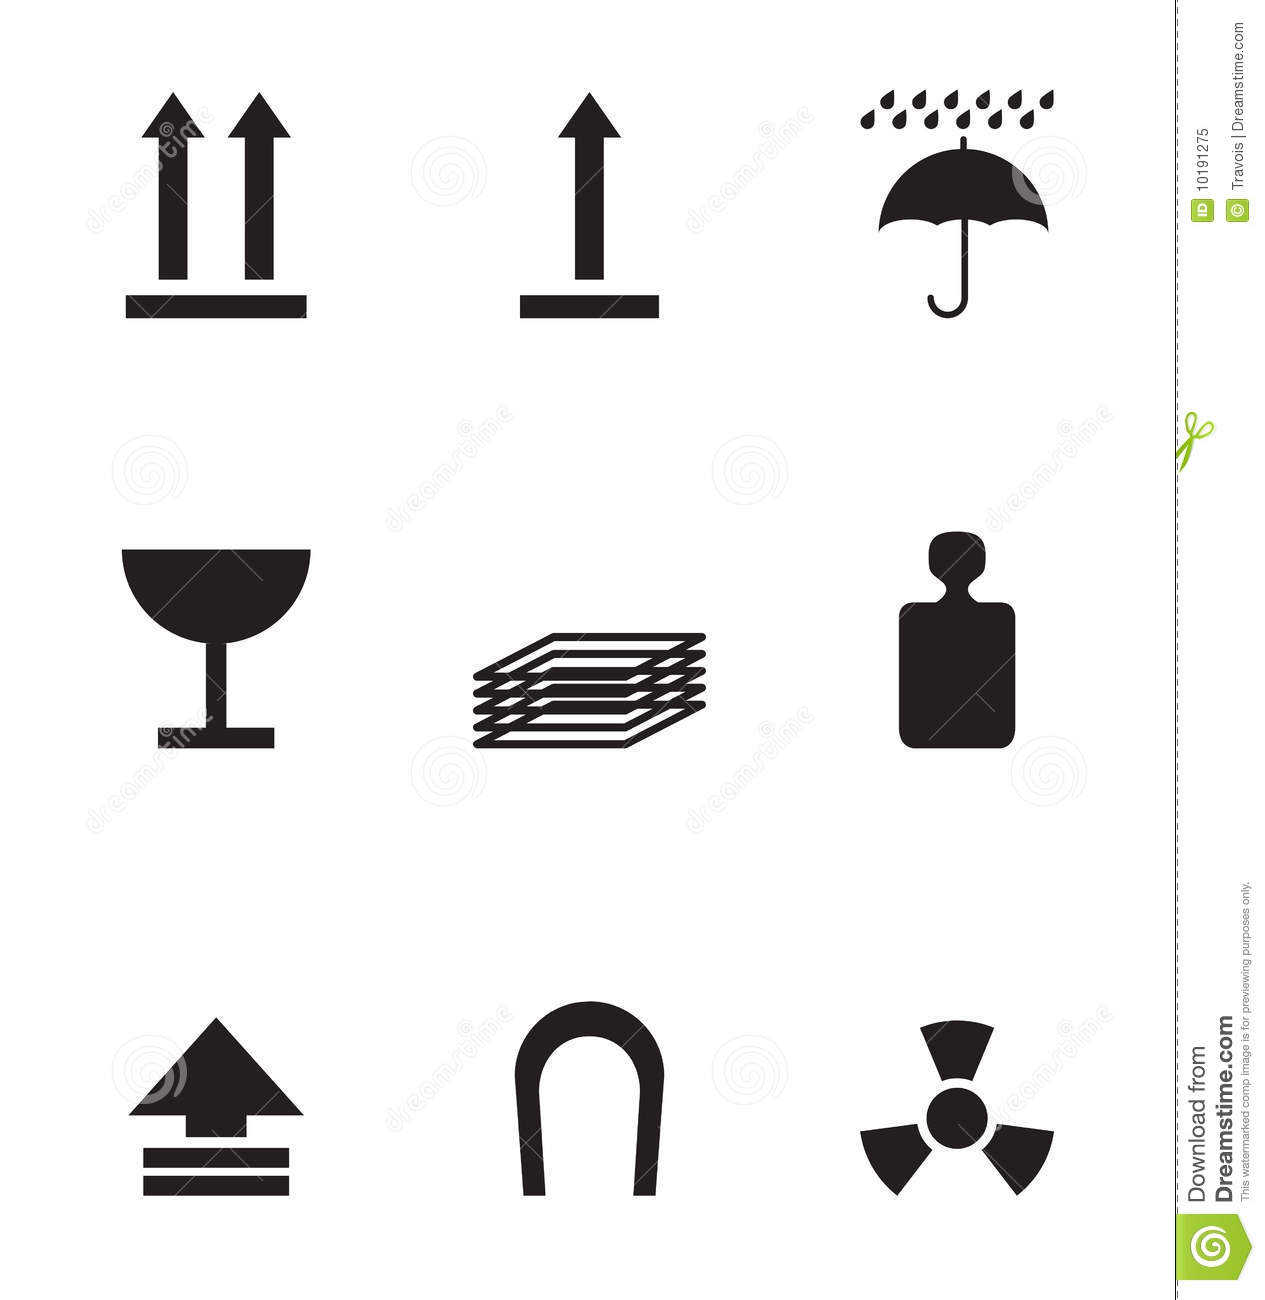 Package Symbols Royalty Free Stock Photo